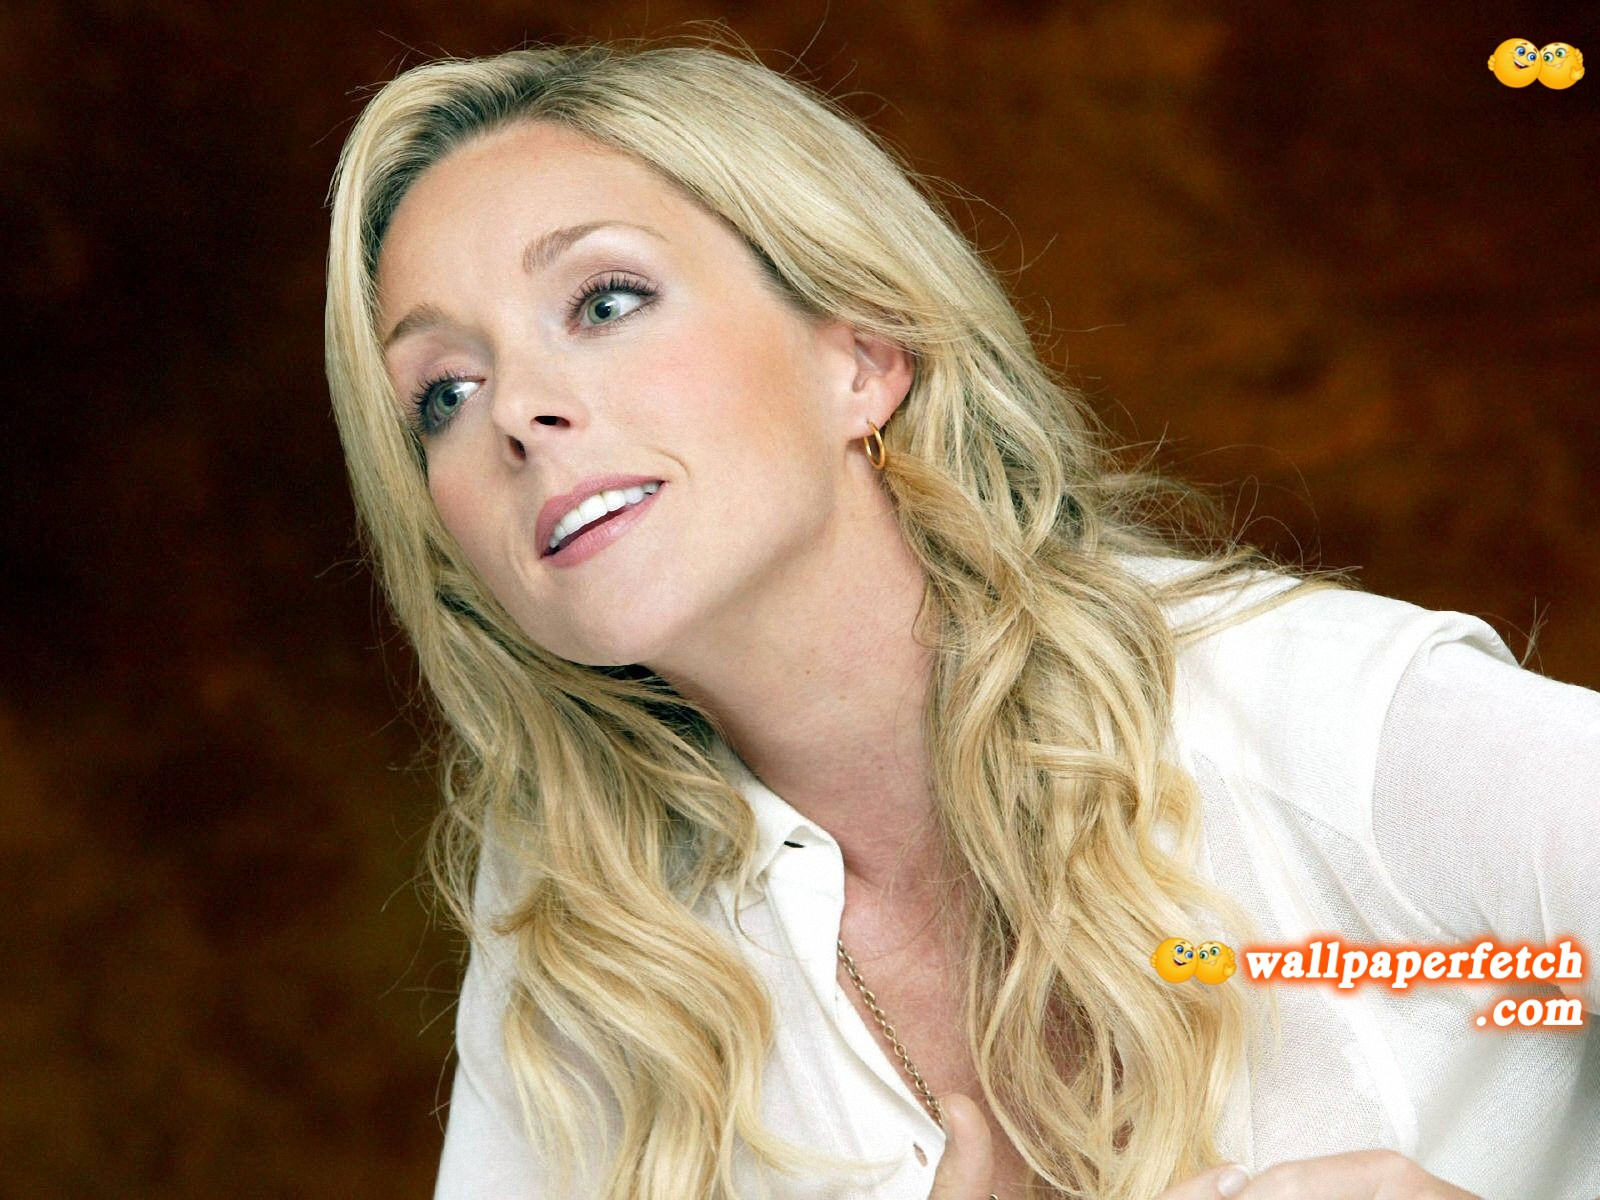 Jane Krakowski Wallpapers 2012 Wallpaper Fetch Catalogues Sarah Jane